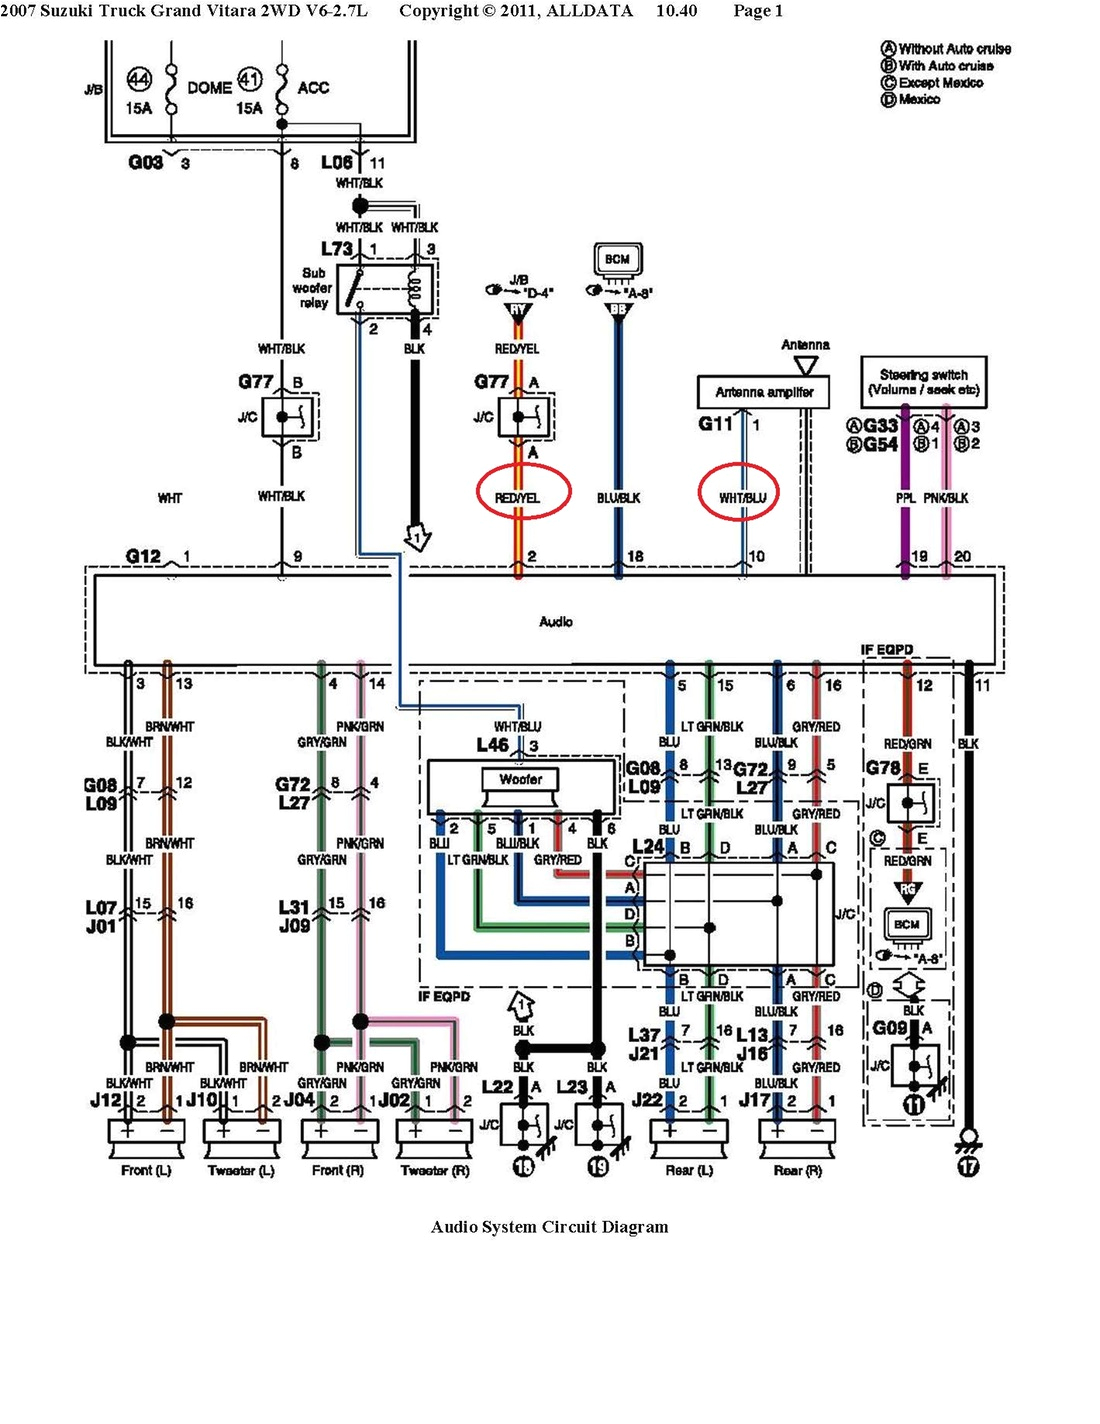 suzuki radio diagram data schematic diagram suzuki kizashi stereo wiring diagram suzuki kizashi radio wiring diagram